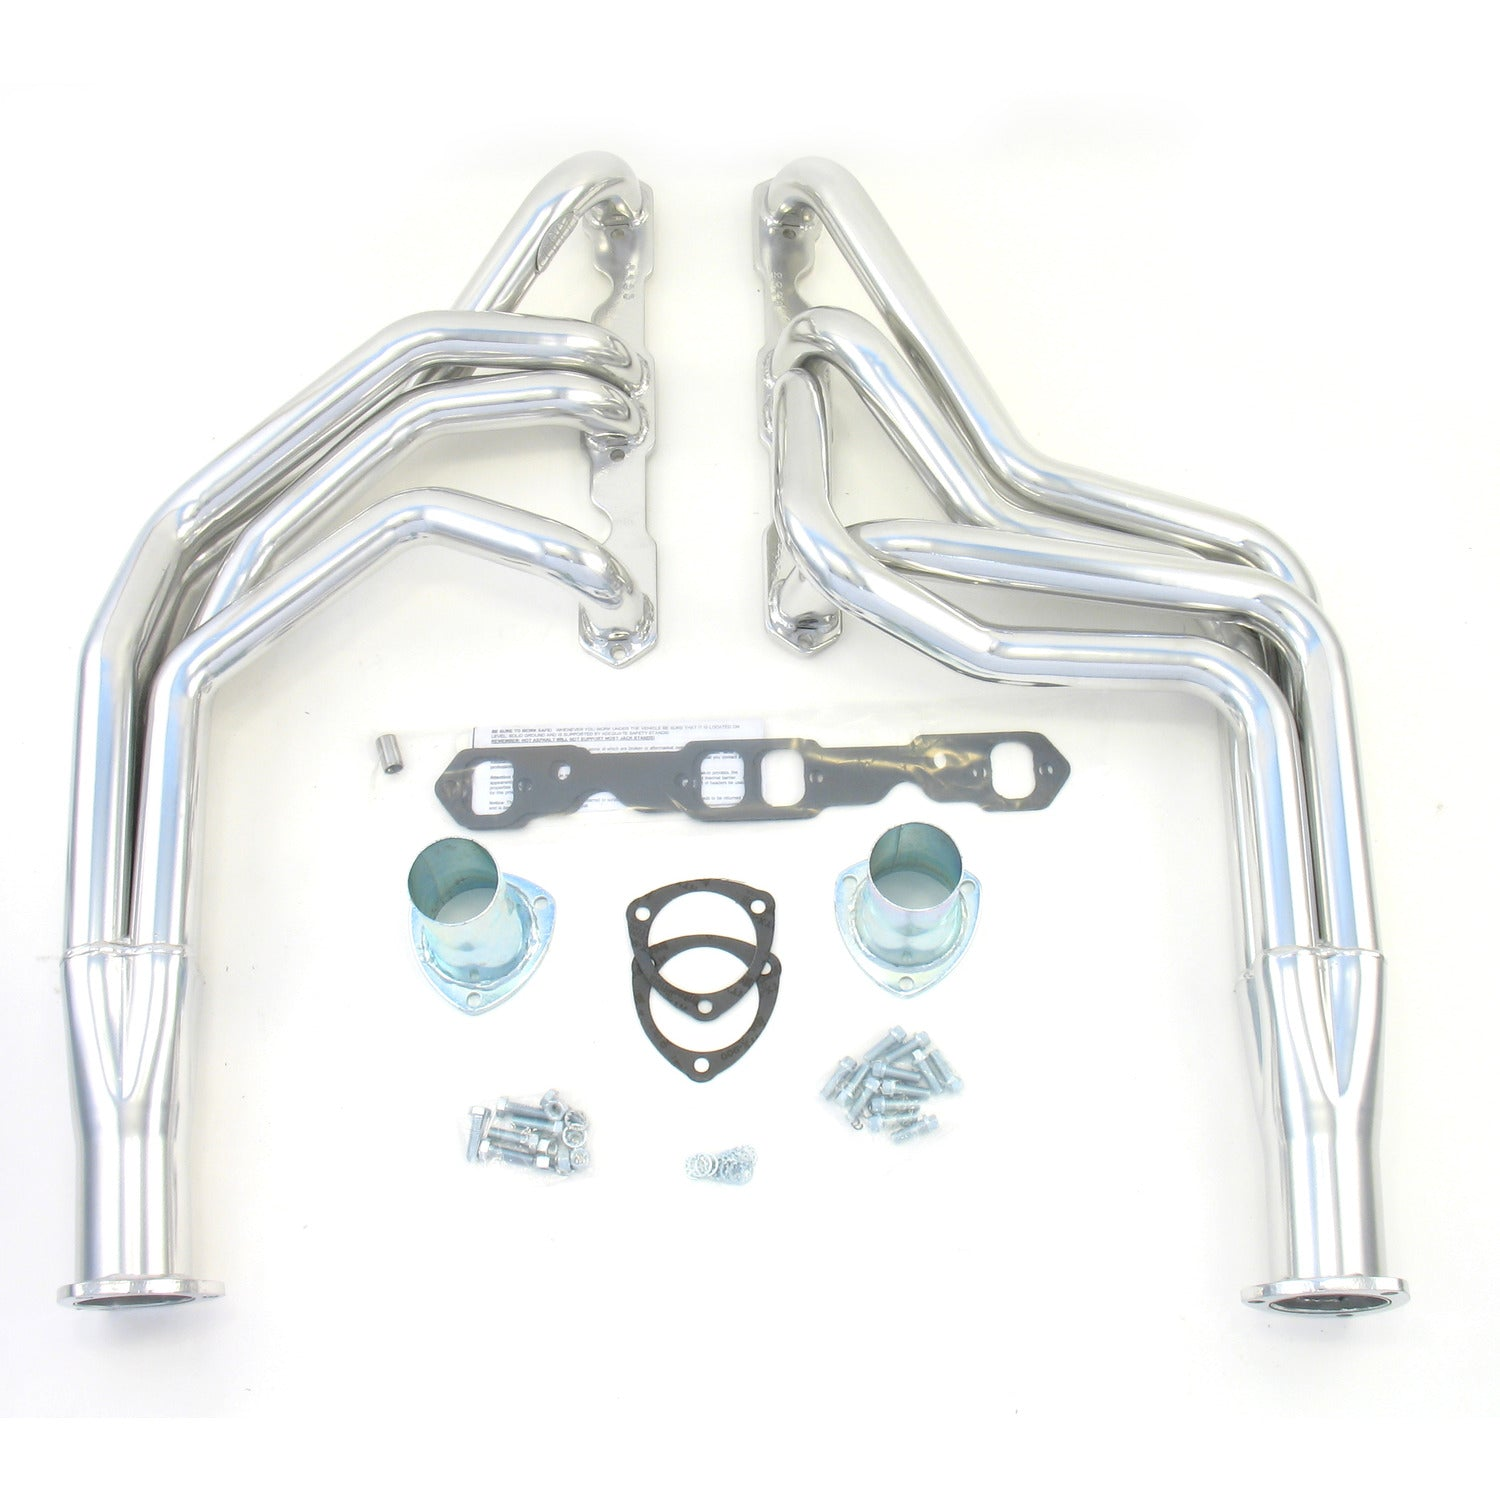 "Doug's Headers D353 1 3/4"" 4-Tube Full Length Header Chevrolet Pass Small Block Chevrolet 55-57 Metallic Ceramic Coating"